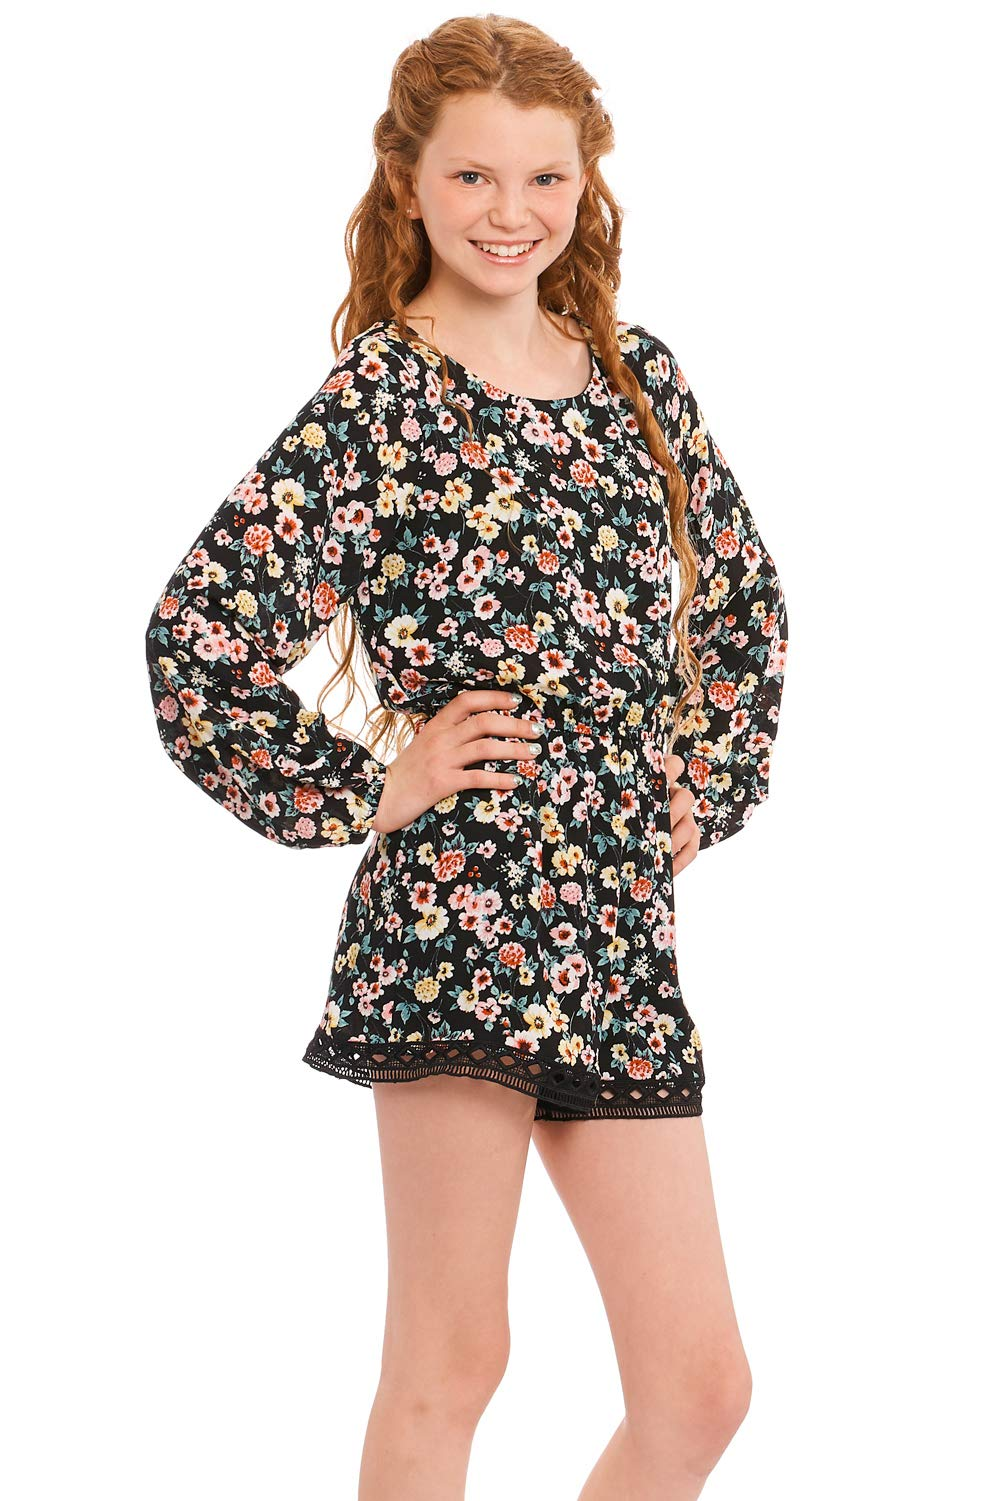 Truly Me, Girls' Long Sleeve Woven Romper in Floral Print, Size 7-16 (12, Black Floral) by Truly Me